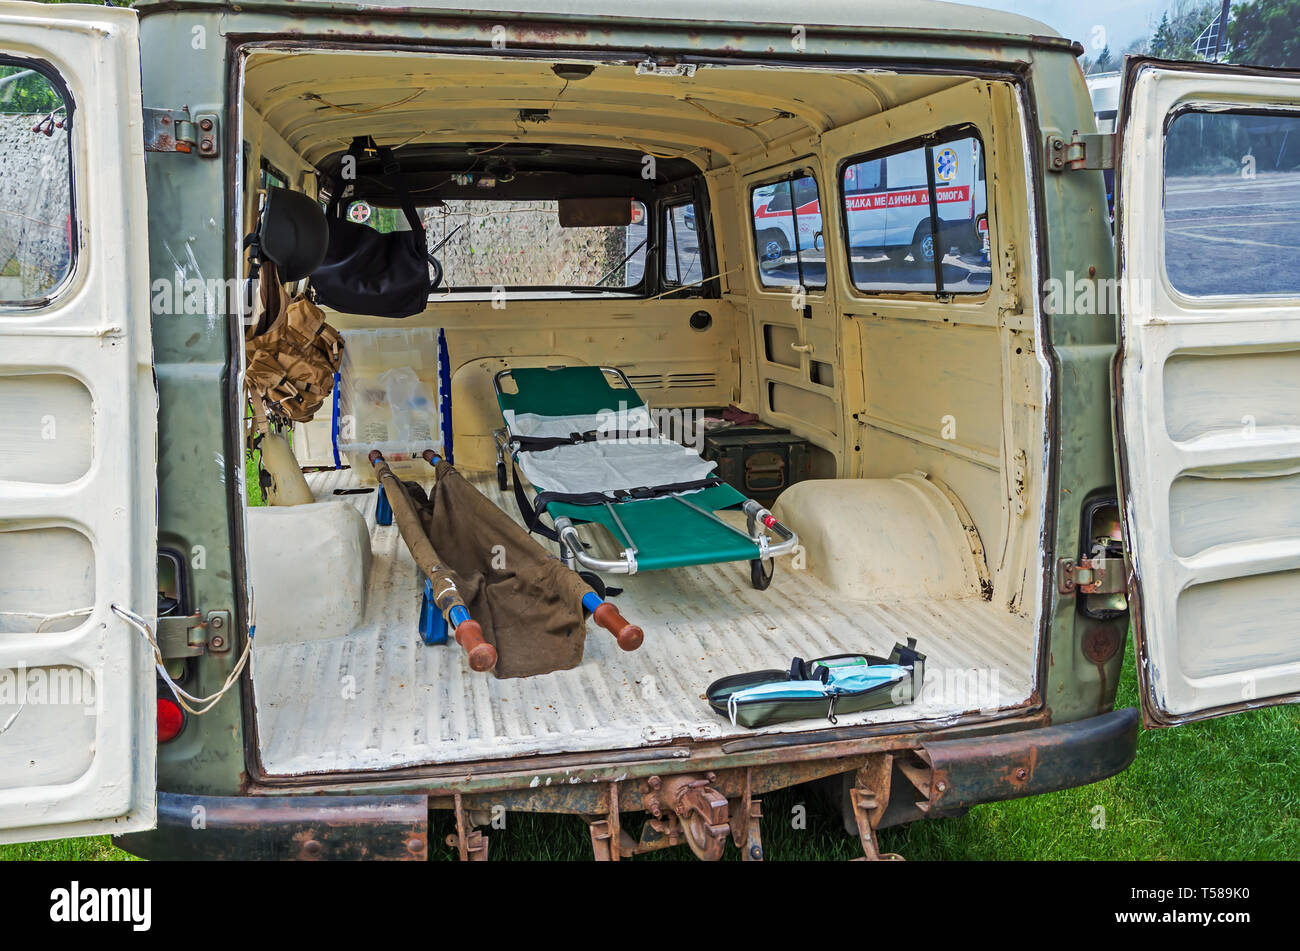 Interior layout ambulance Ukrainian armed forces of the Soviet manufacture which evacuated wounded soldiers at the beginning of Russian occupation - Stock Image